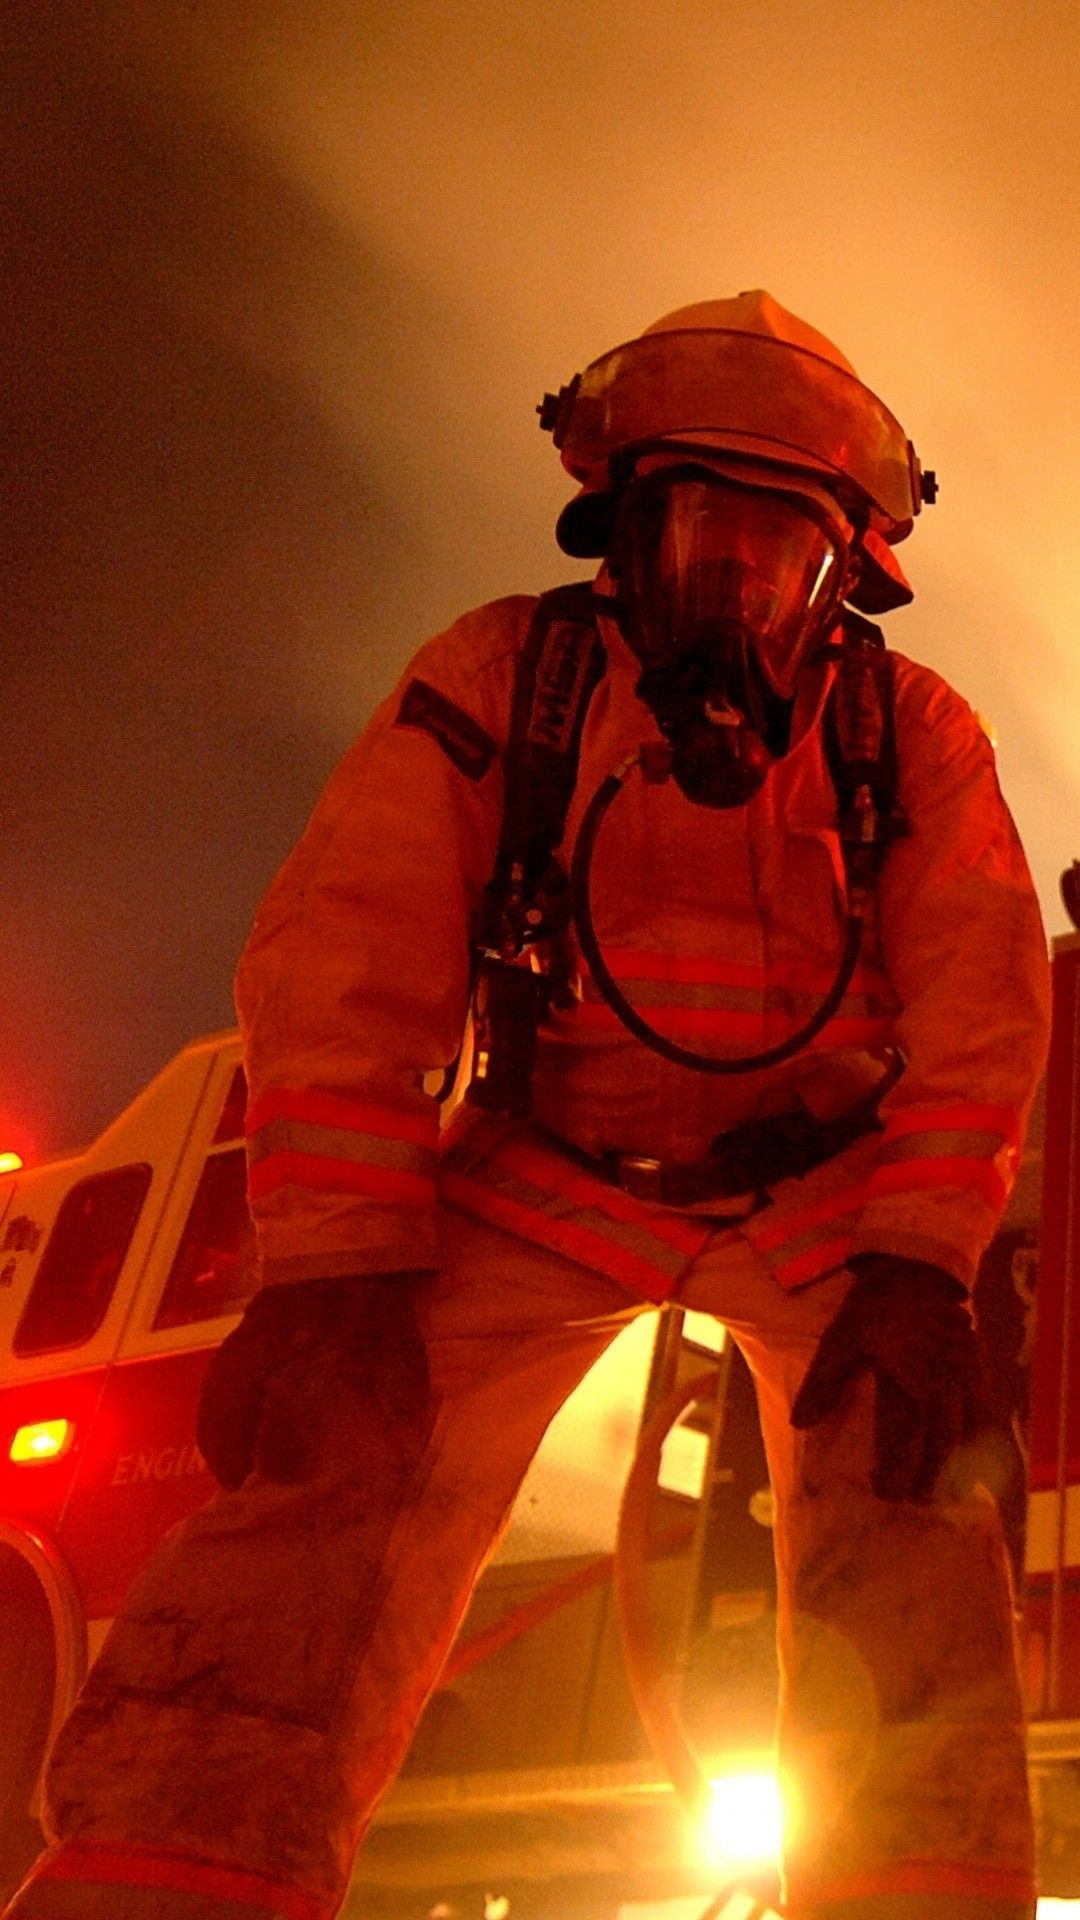 60 Hd Firefighter Wallpapers On Wallpaperplay Firefighter Wallpaper Free Animated Wallpaper